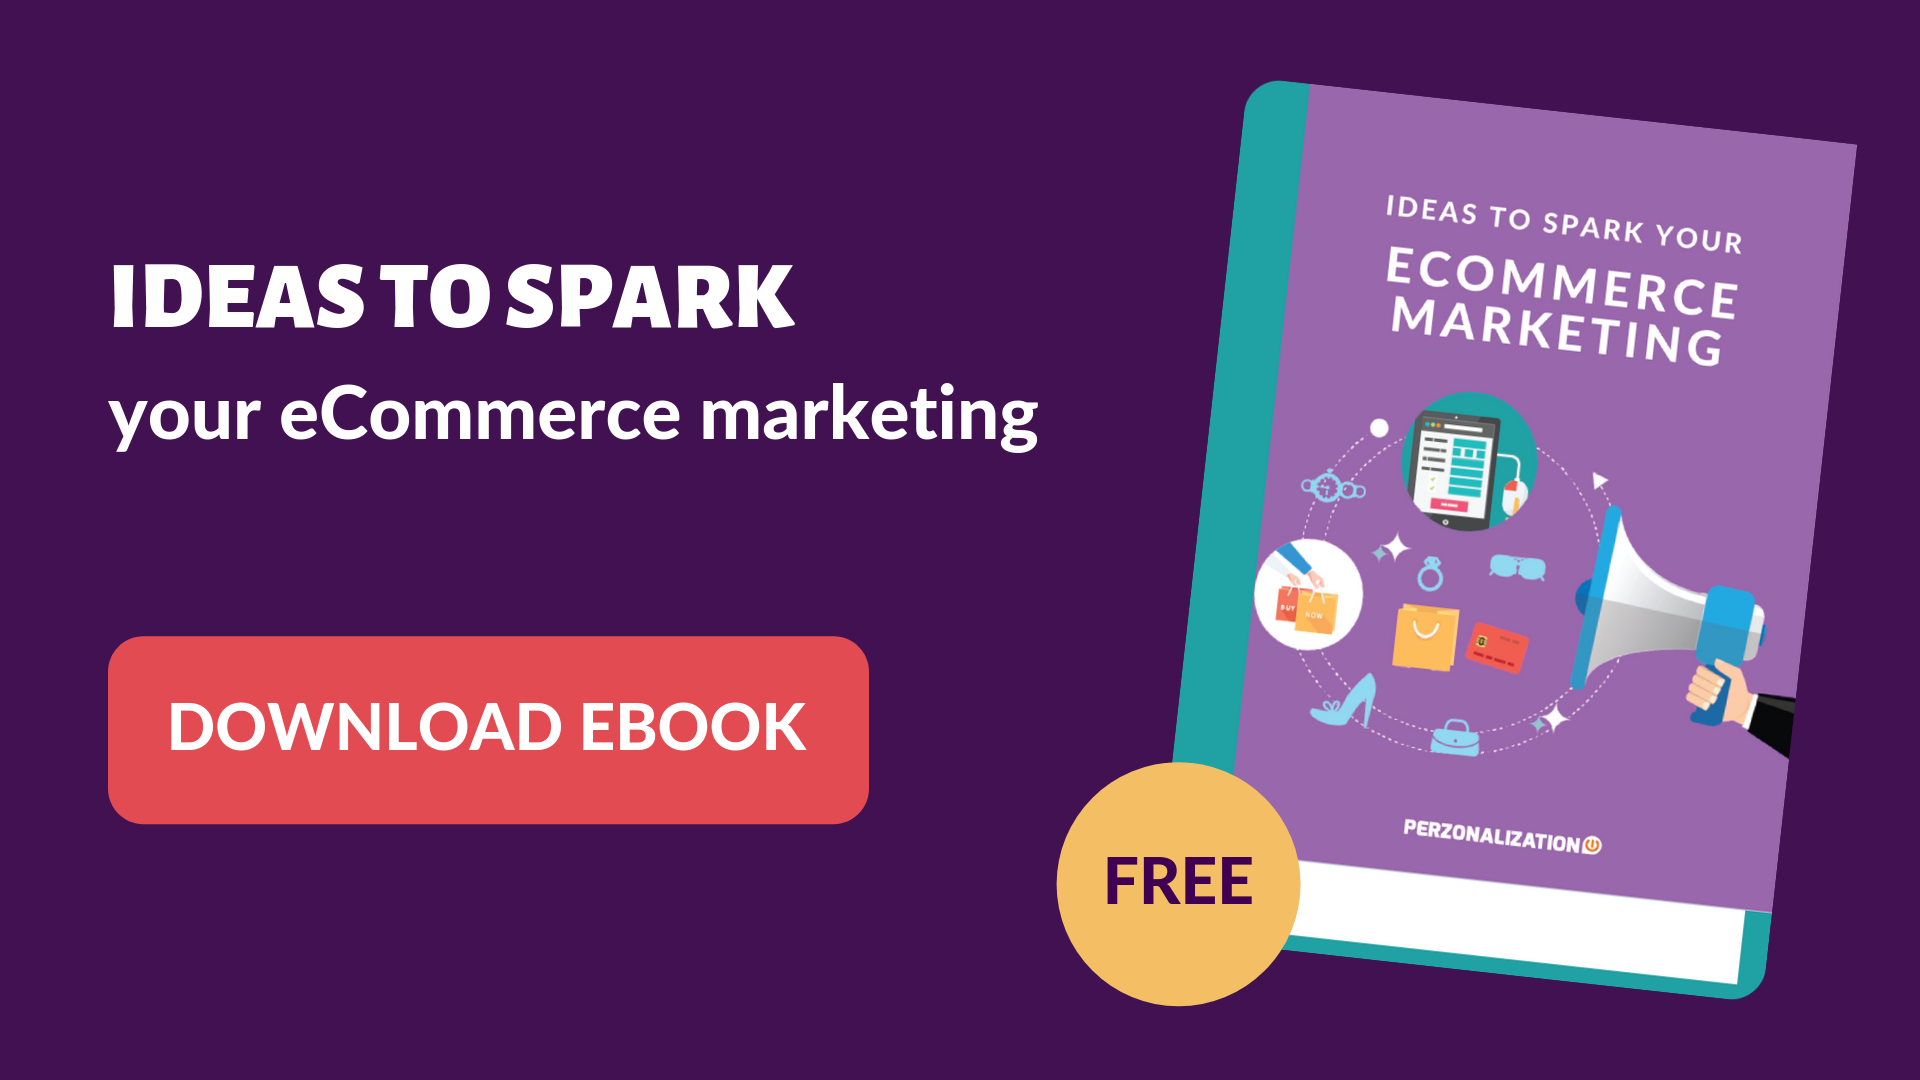 Download free eBook: Ideas to spark eCommerce marketing